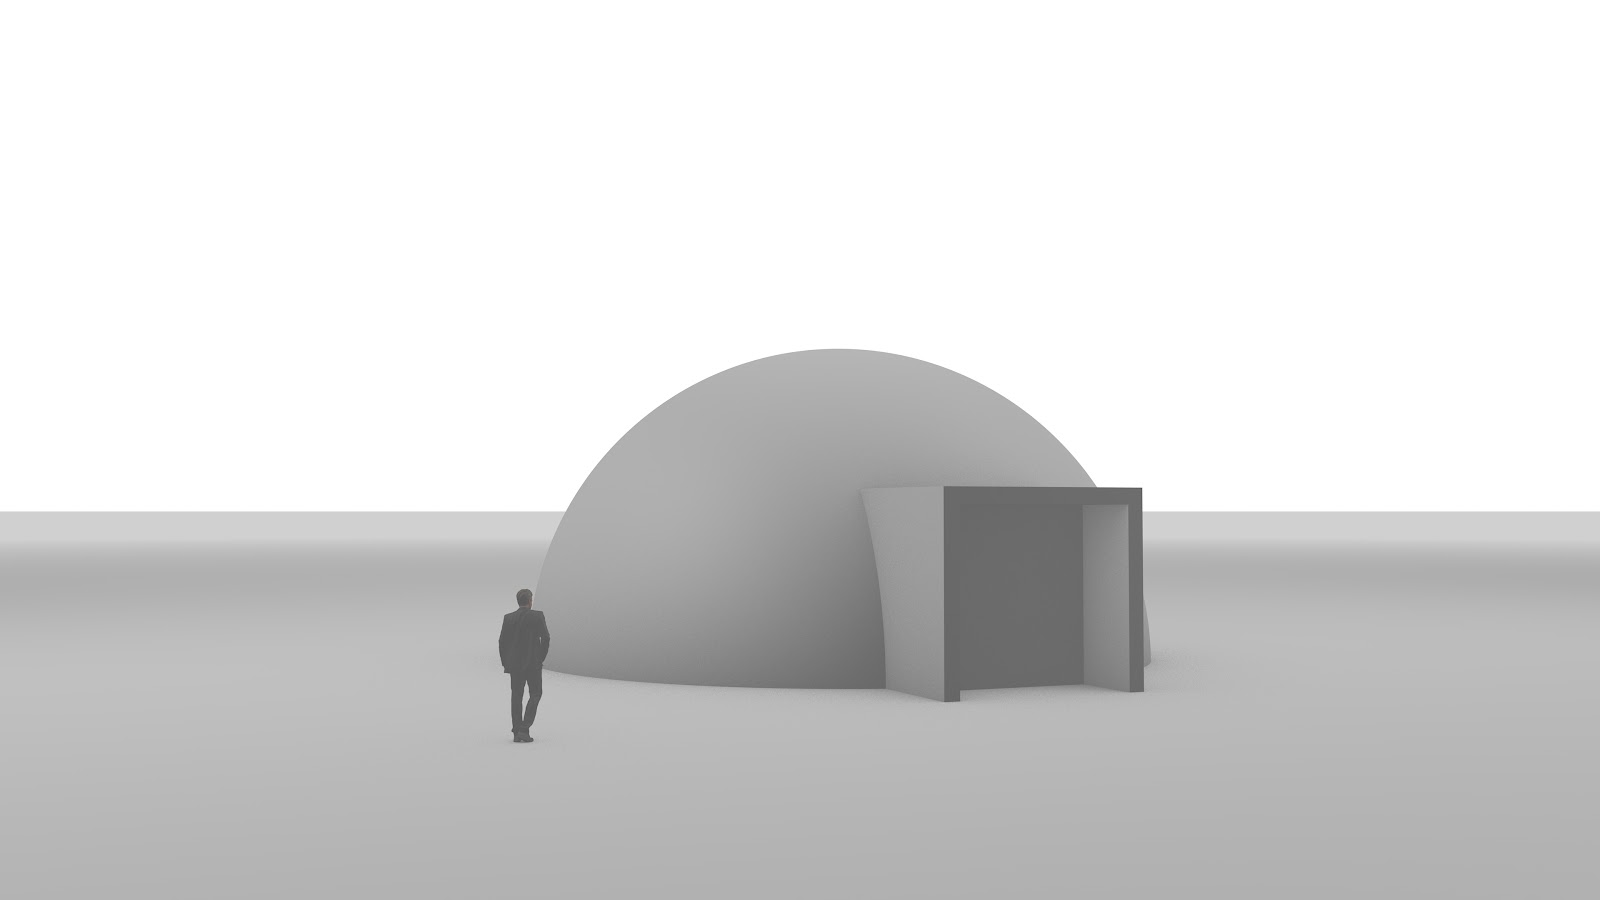 Grey sketch with a spherical space and a man in a suit walking towards the dome